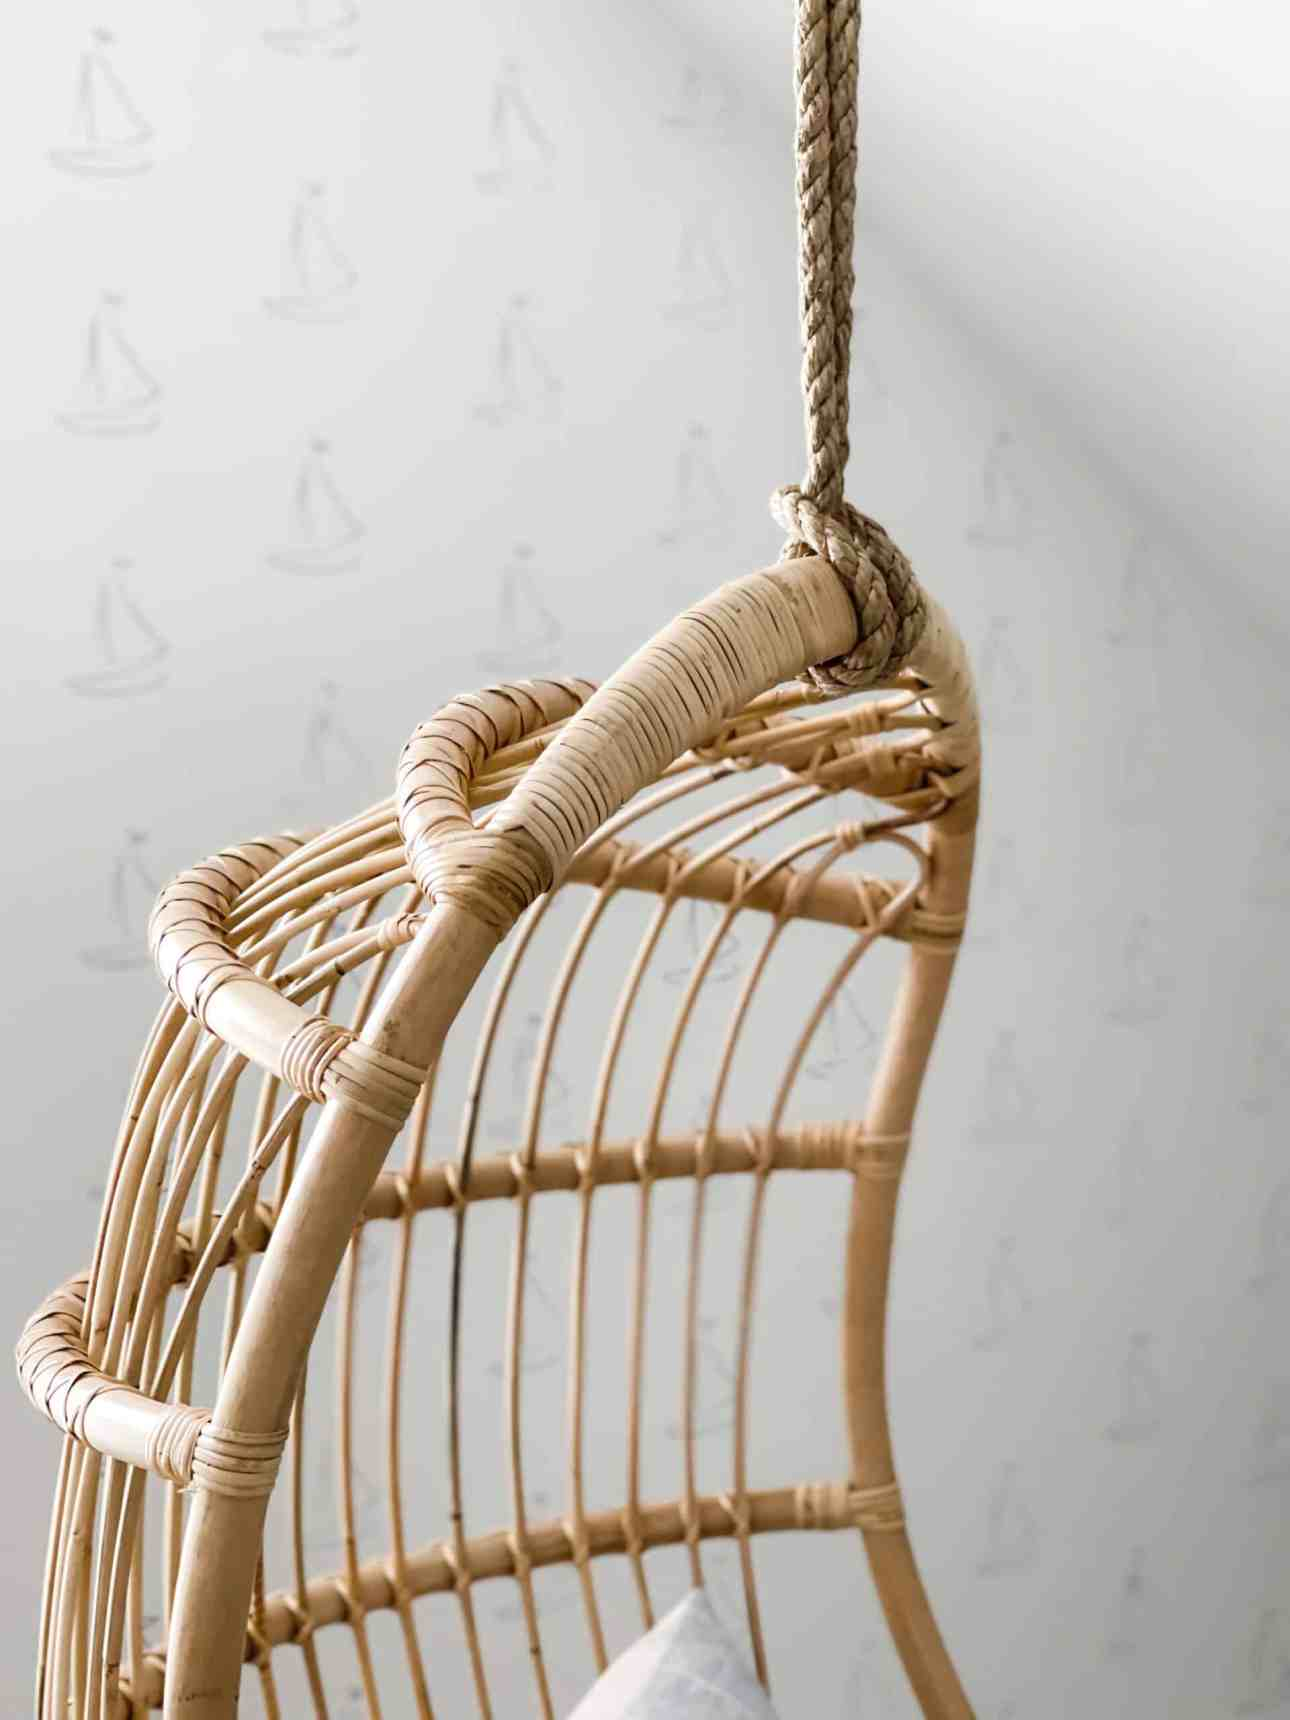 Rope holding the hanging rattan chair that holds 300lbs.